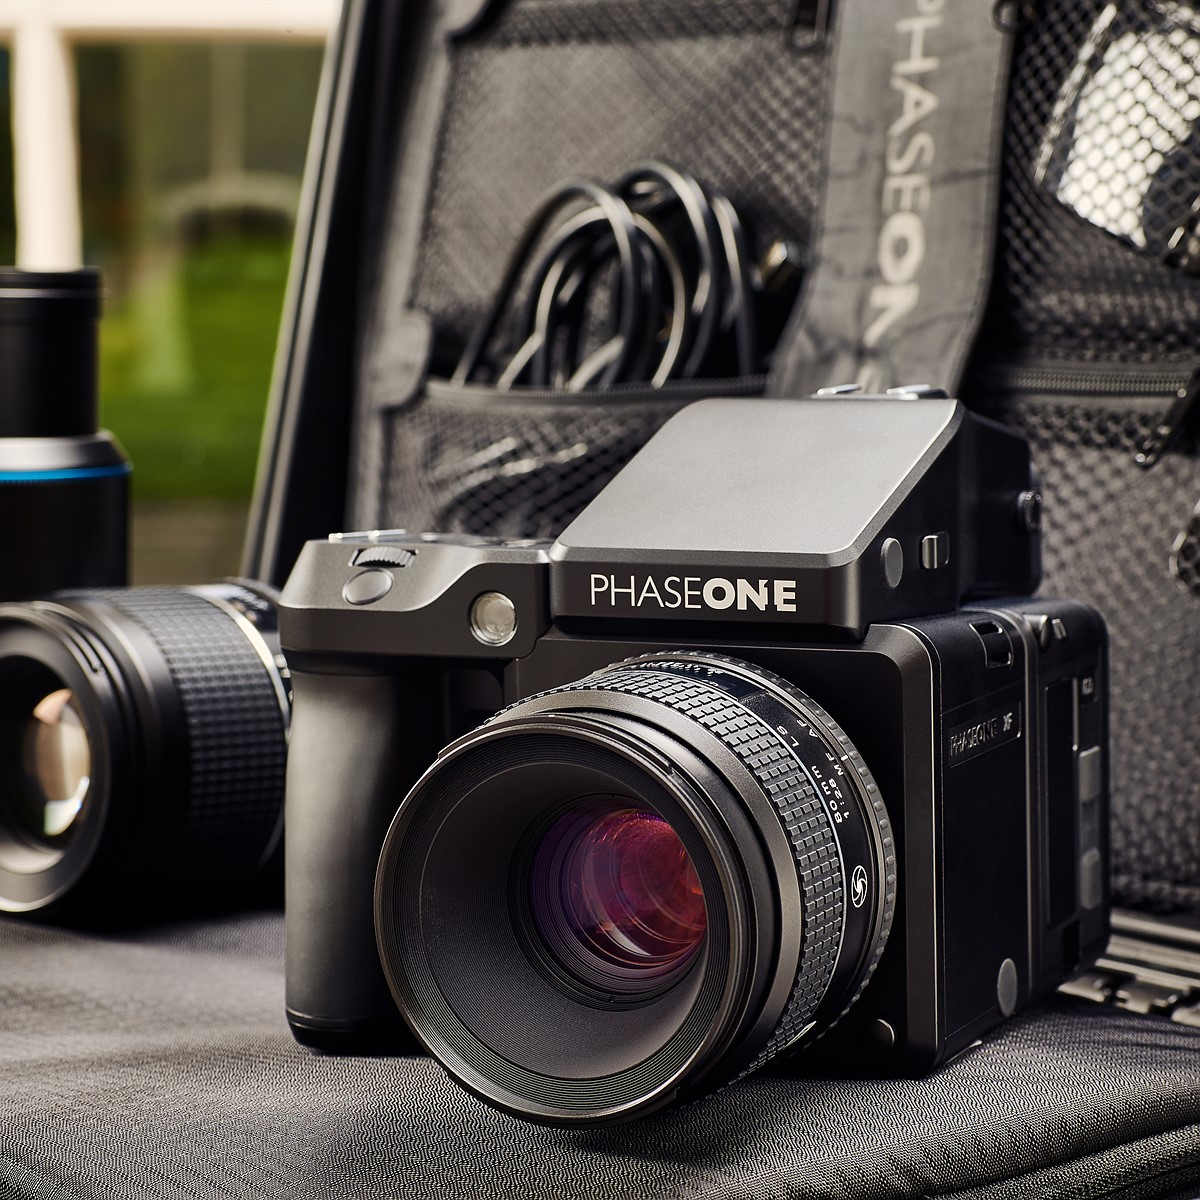 Serious Resolution Phase One Xf With Iq3 100mp Back Tested Digital Hammer R1s Dual Sim Kamera Photography Review